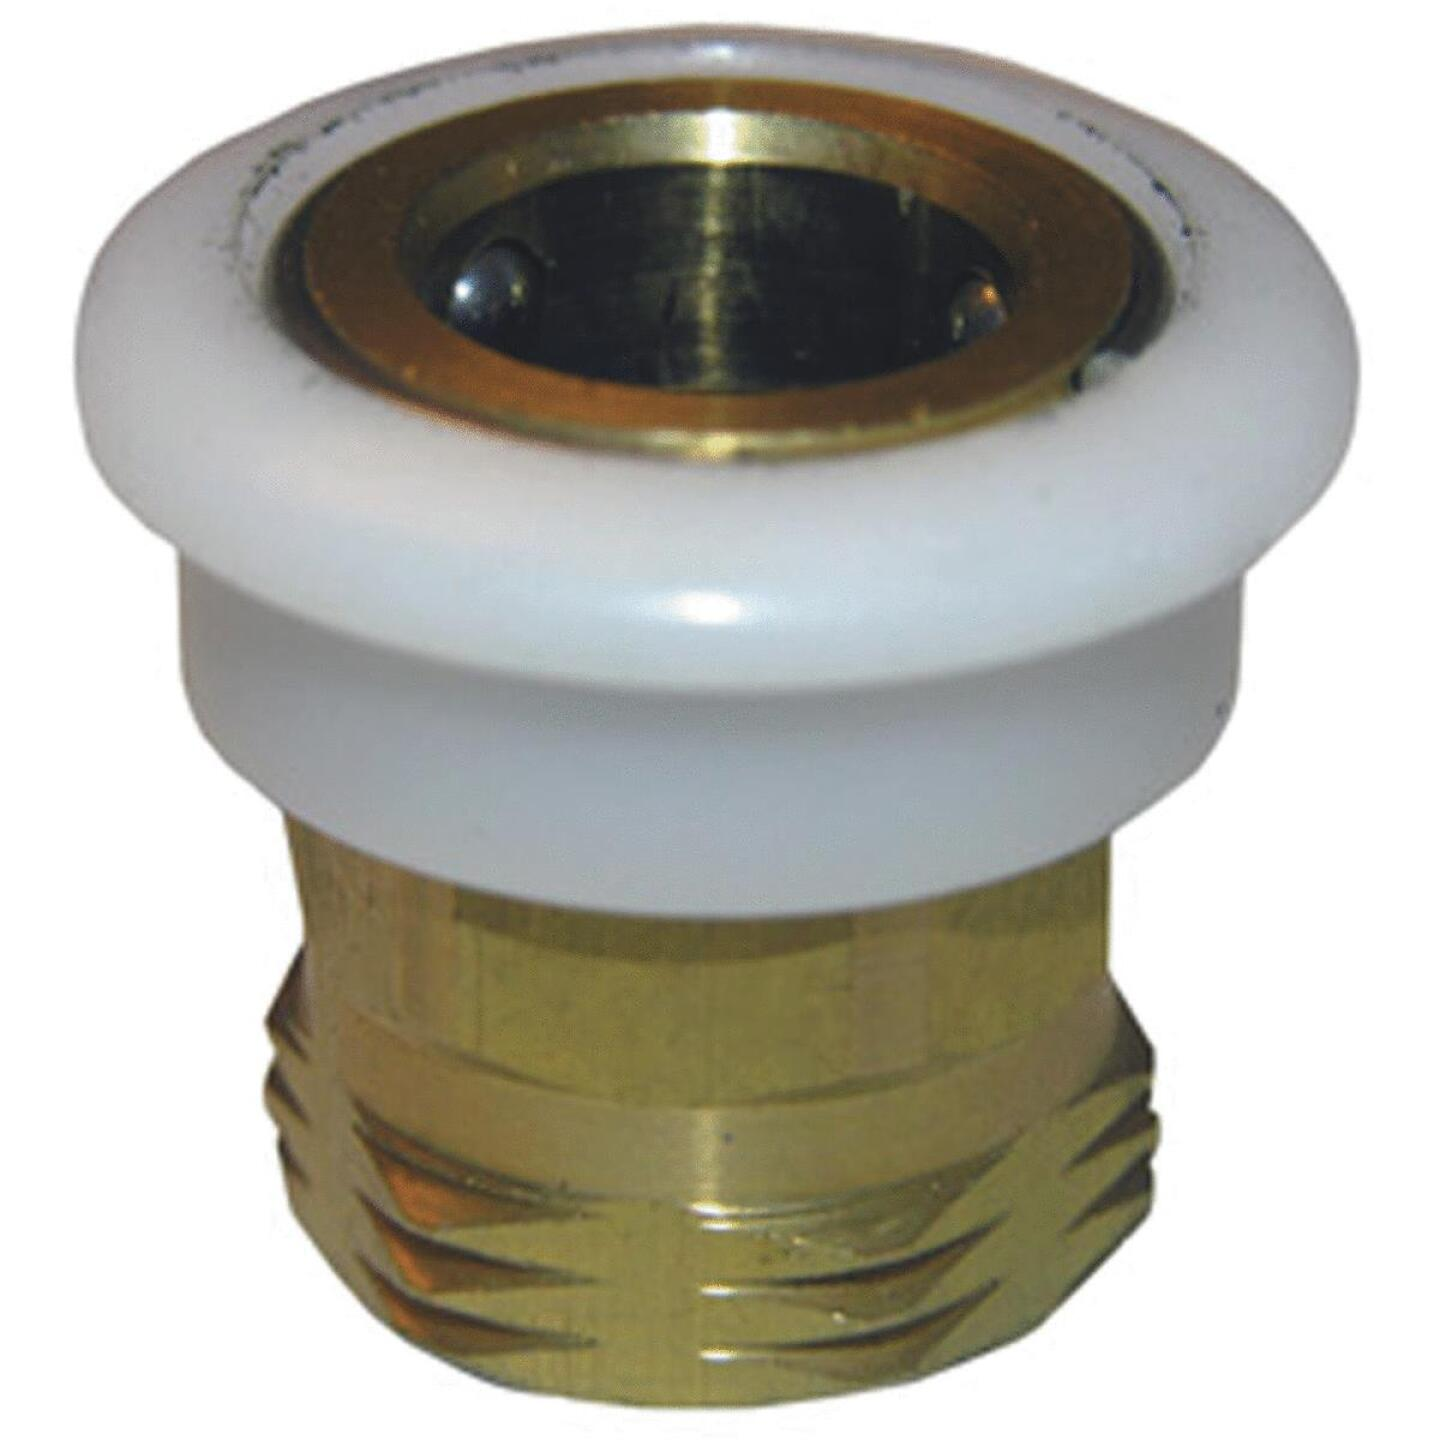 Lasco Faucet Snap Fitting for Washing Machine Connector Image 1